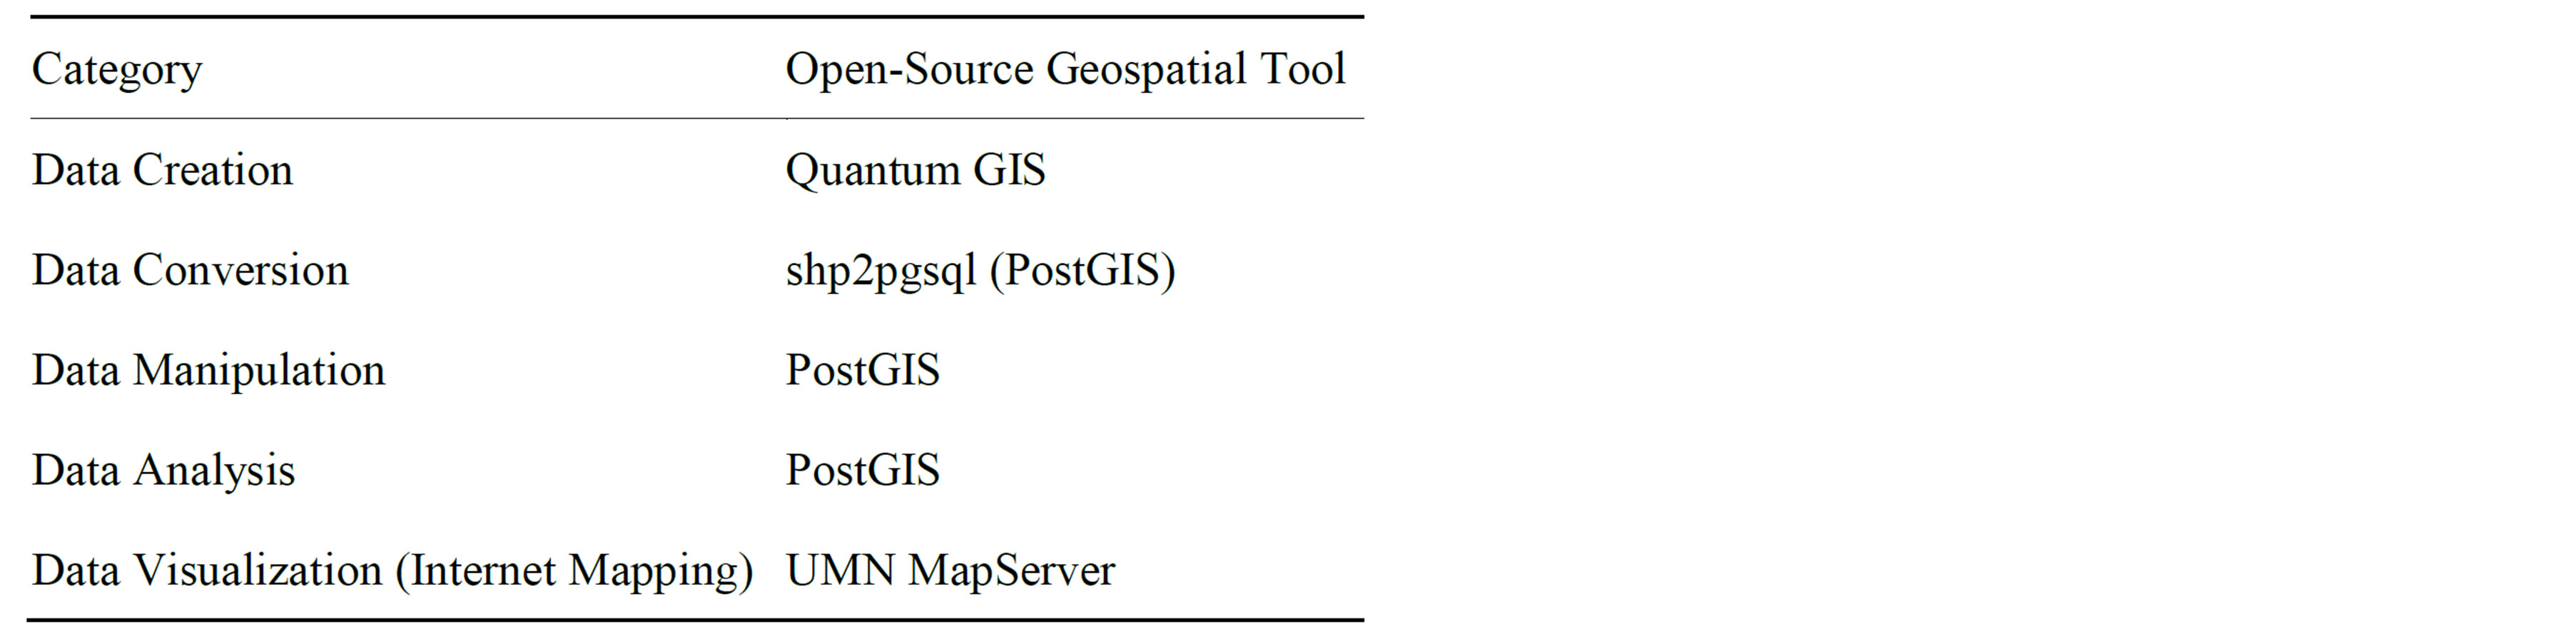 Mapping Spatial Data on the Web Using Free and Open-Source